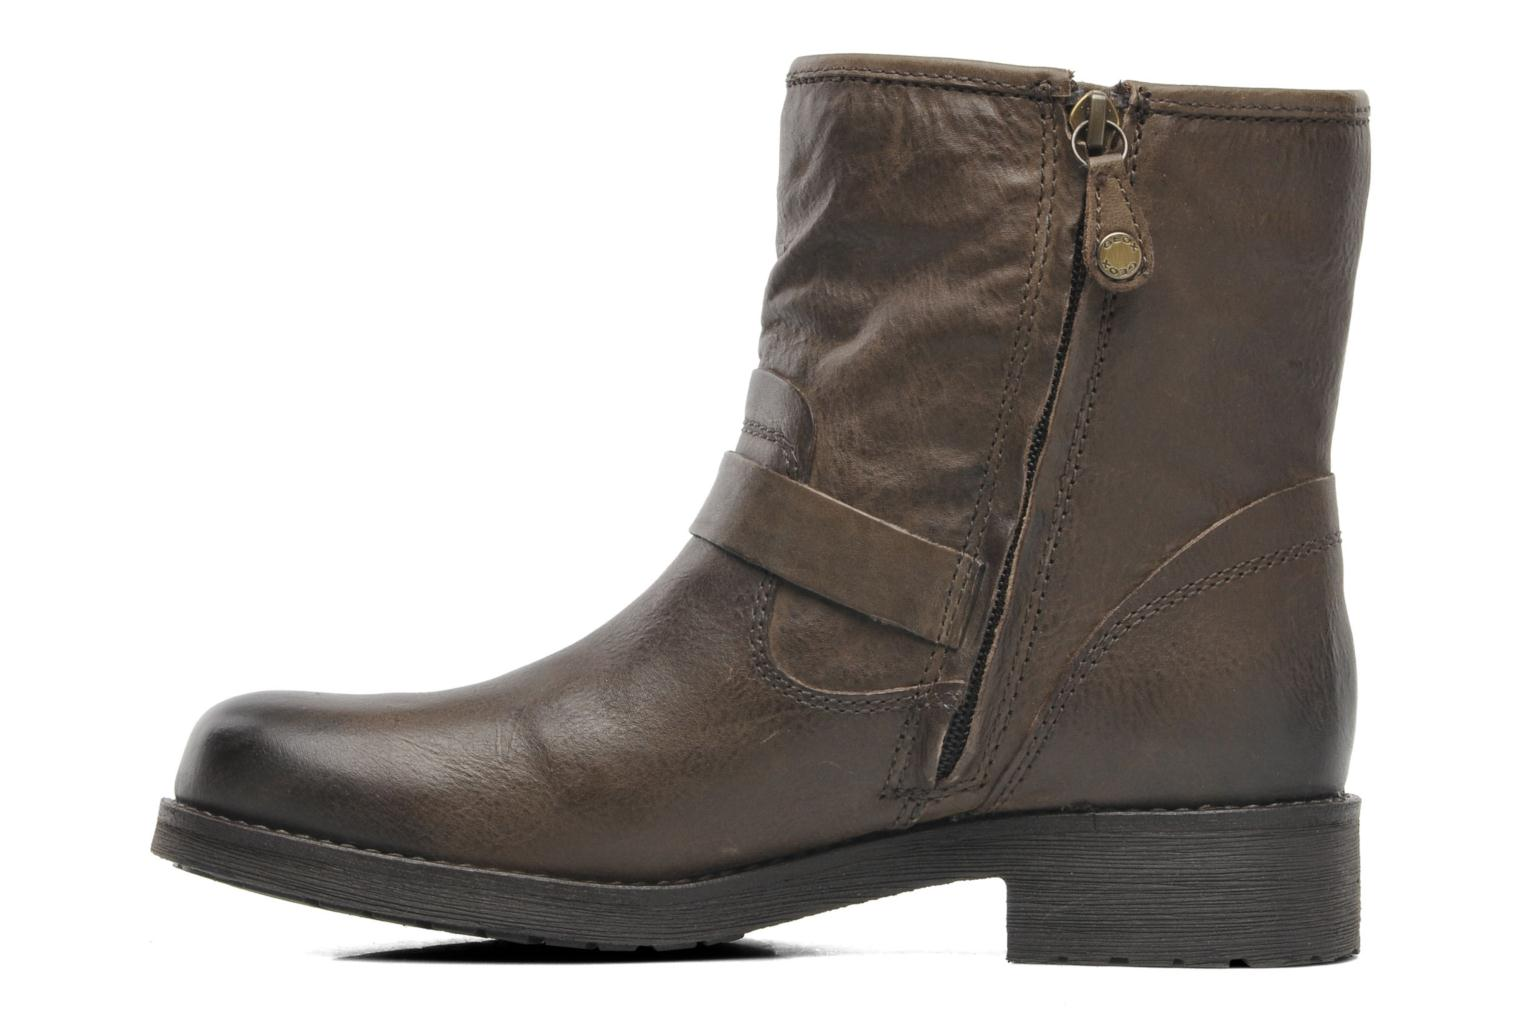 Bottines et boots Geox D NEWVIRNA E Marron vue face